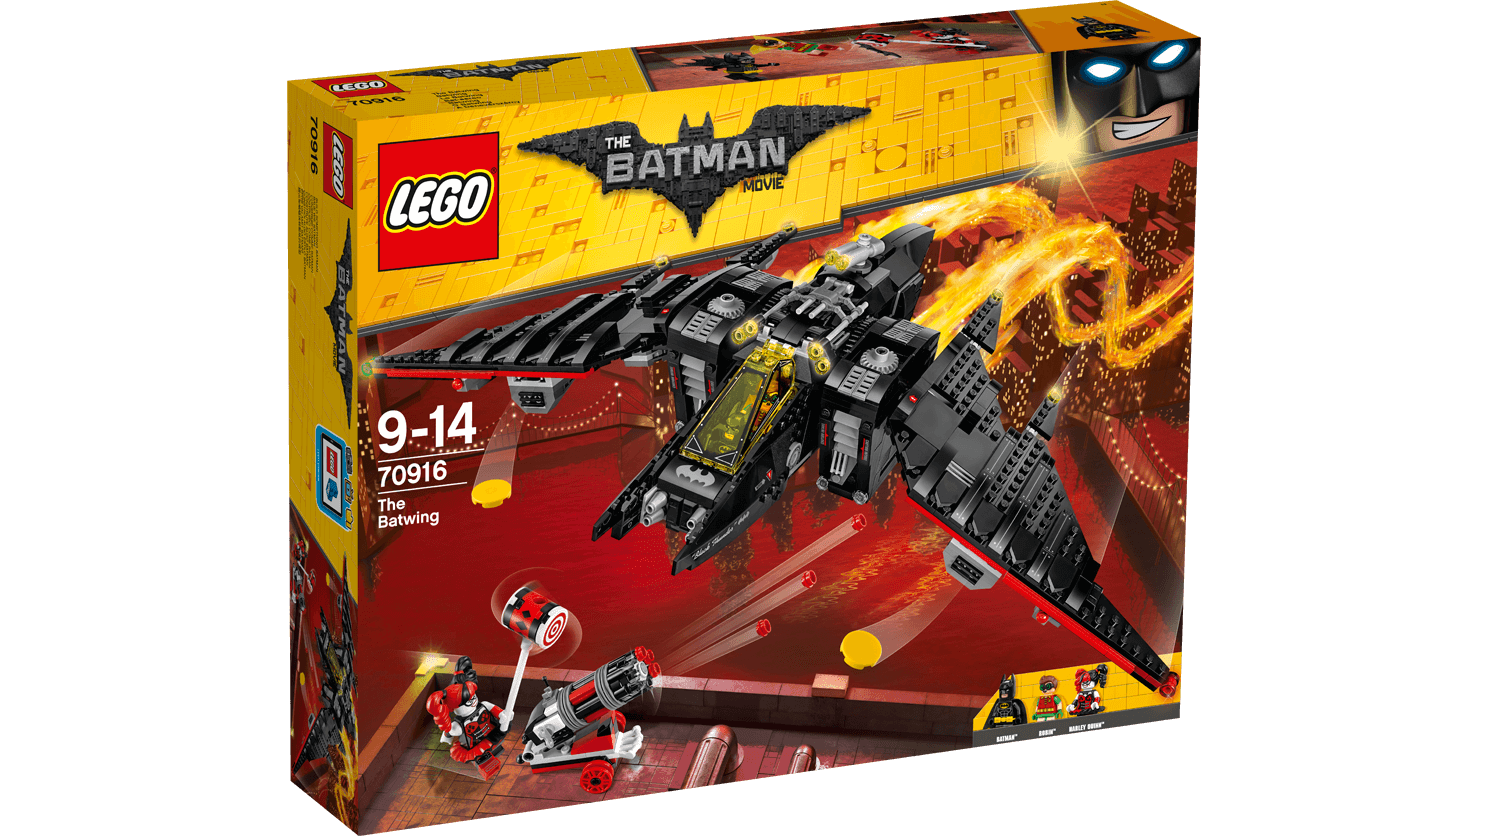 LEGO 70916  Bat-aereo - BATMAN Movie 9-14 Pz 1053